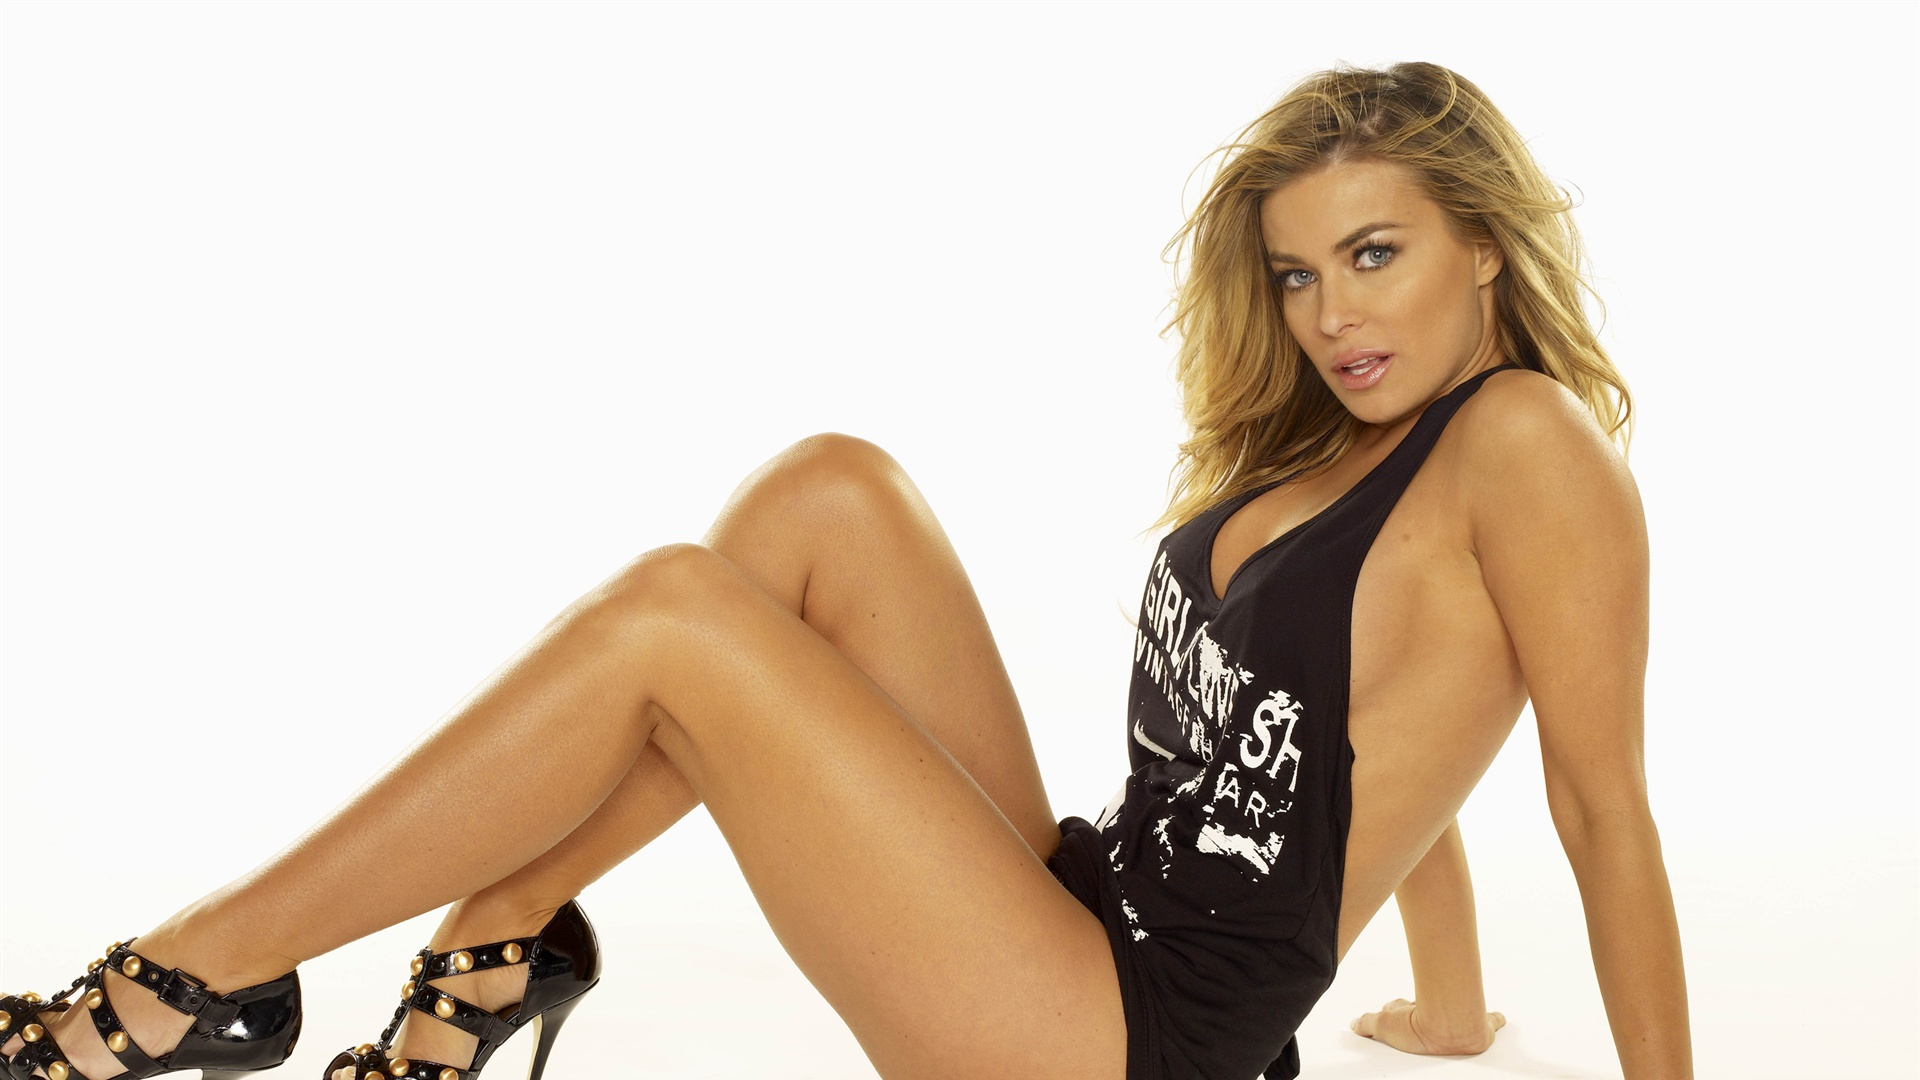 Carmen Electra 03 wallpaper - 1920x1080